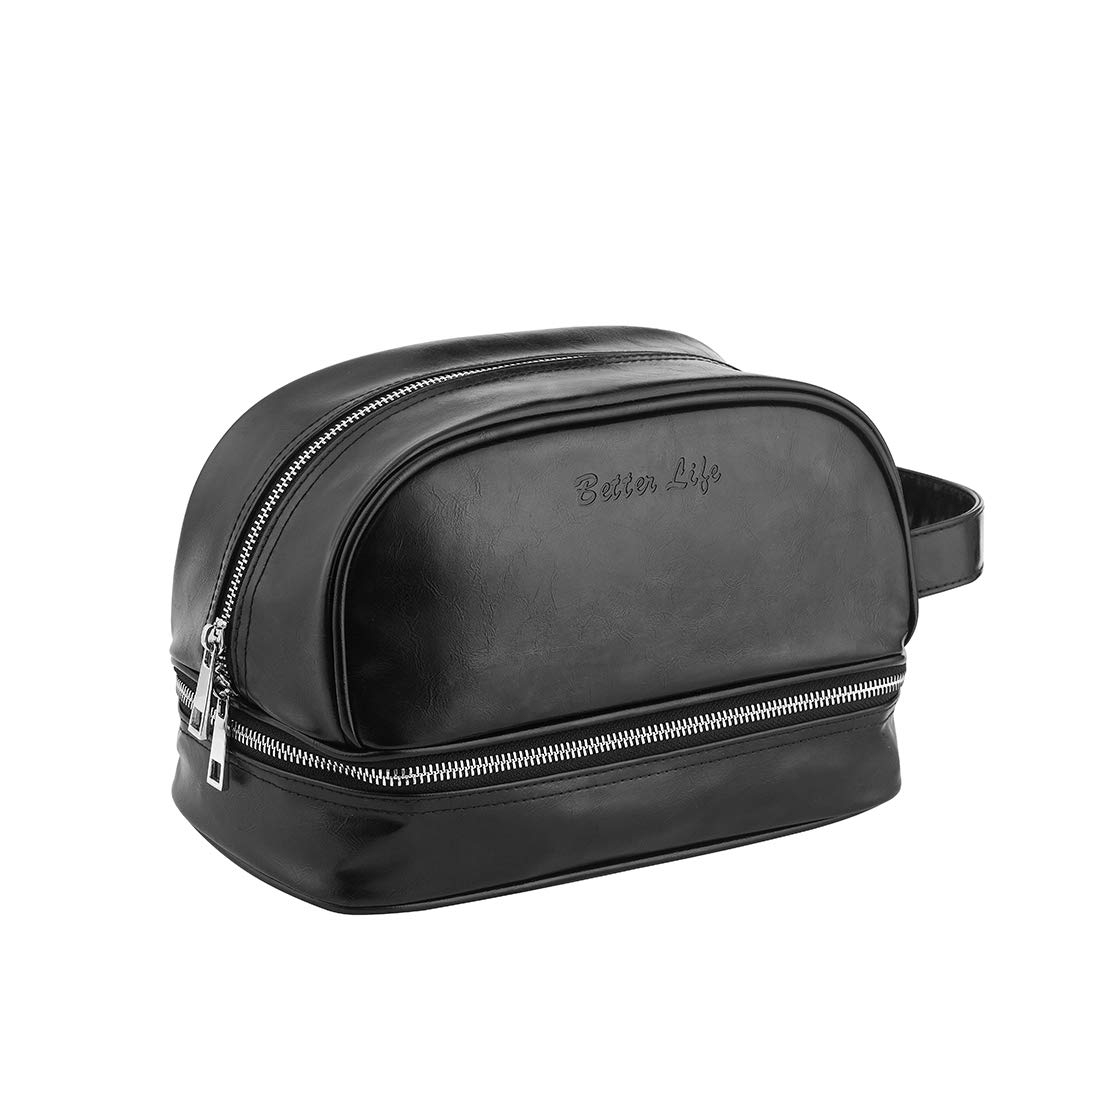 90ef5dd718b Details about Leather Toiletry Bag - Travel Dopp Kit For Men Women    Premium, Compact